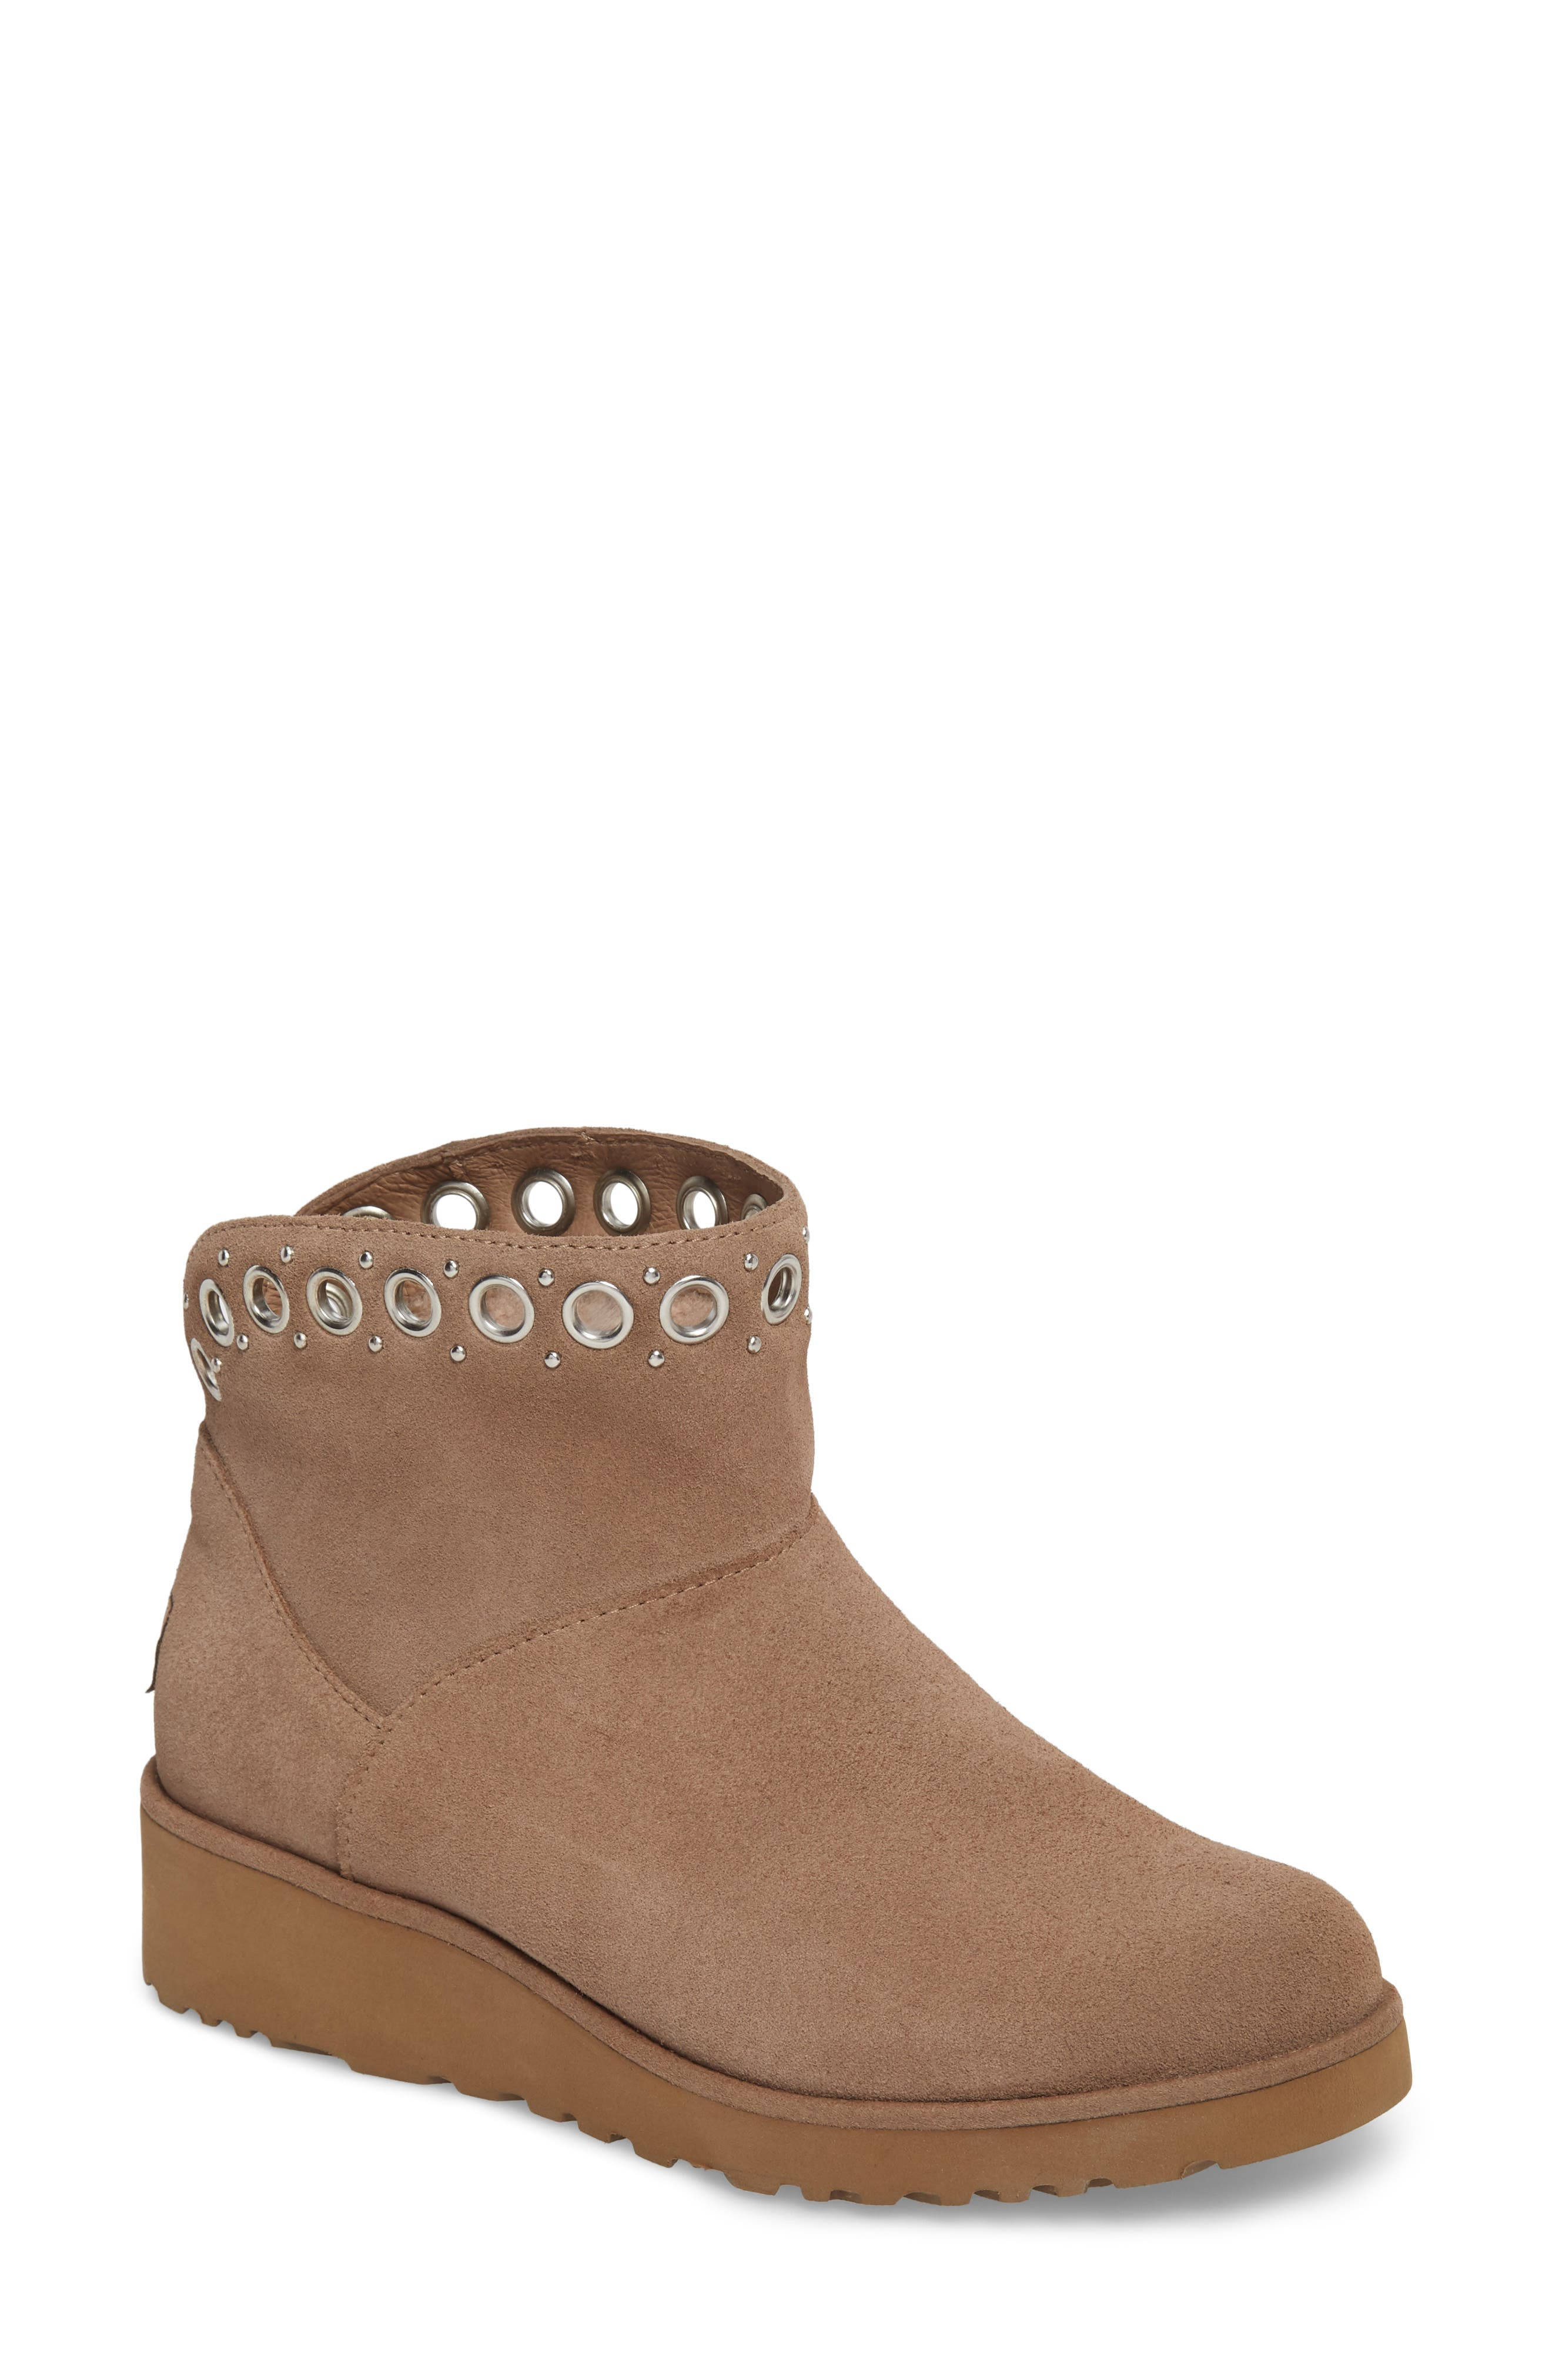 Riley Grommet Wedge Boot,                         Main,                         color, Fawn Suede